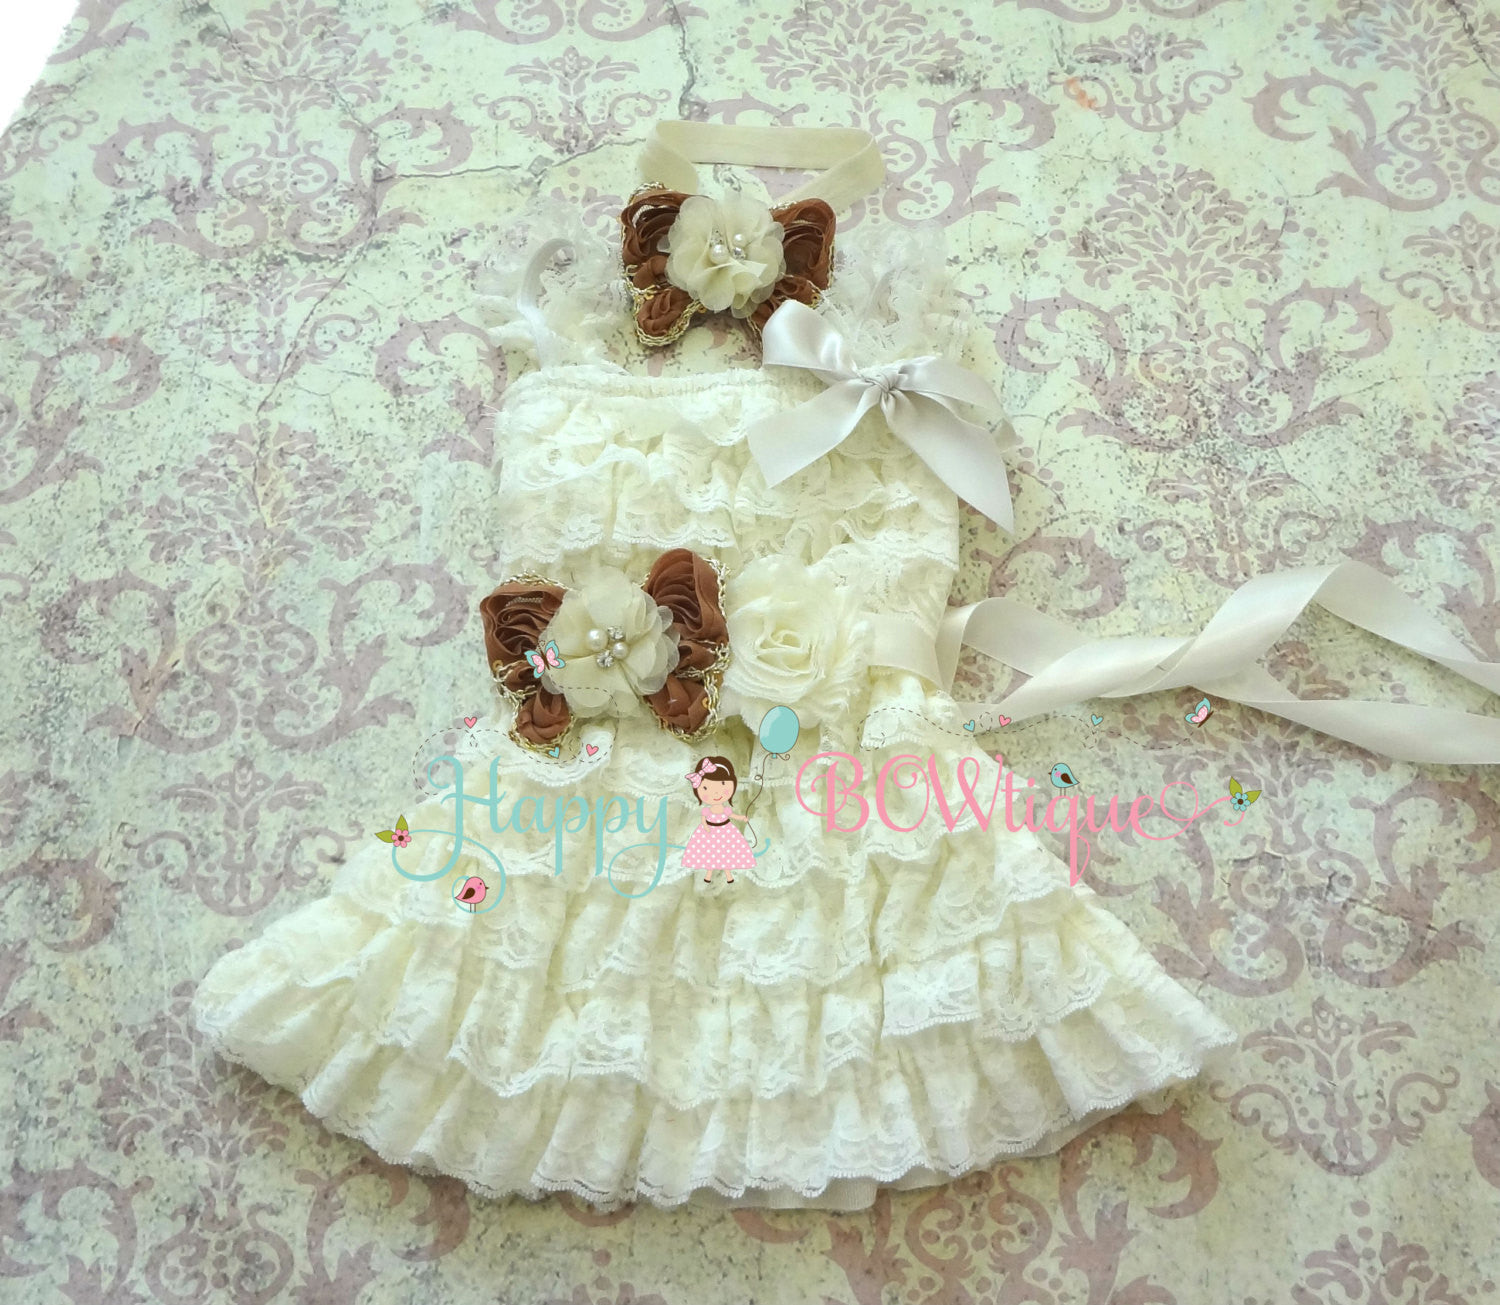 Girl Rustic Brown Dress / Girl Chocolate Tan Butterfly Lace Dress set - Happy BOWtique - children's clothing, Baby Girl clothing